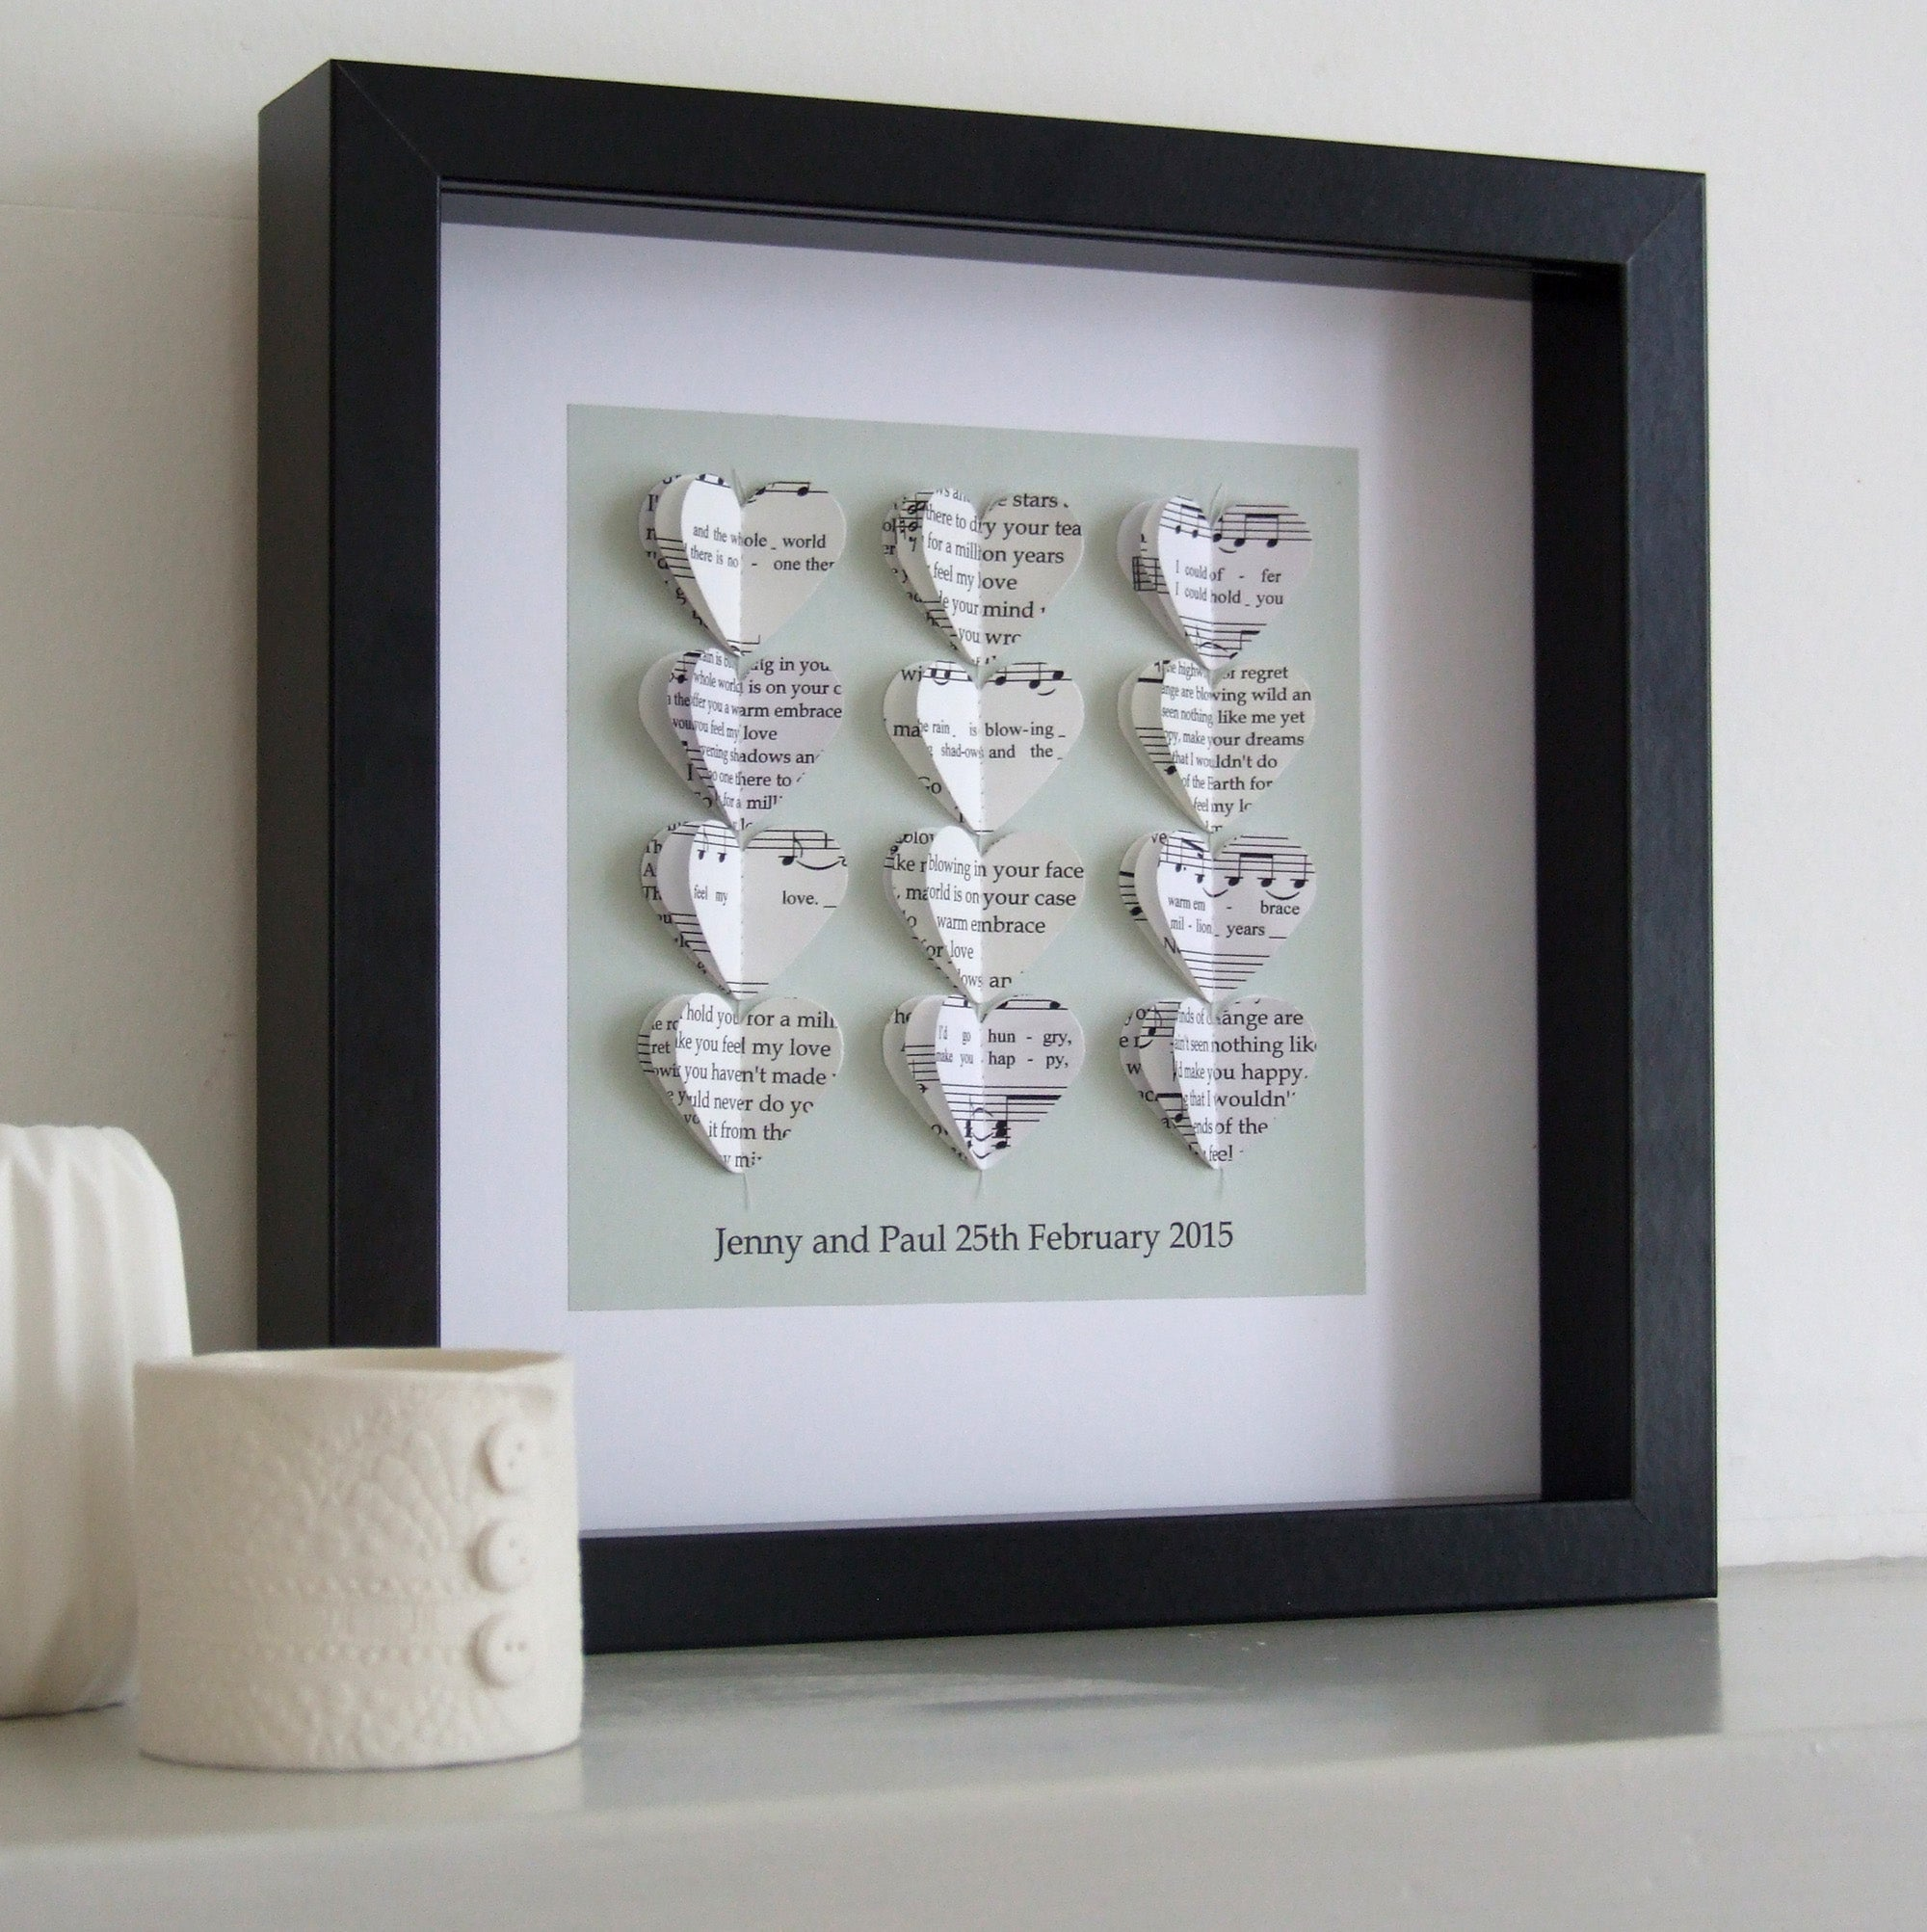 Paper Wedding Anniversary Gift - Your Special Song Framed Picture - Made In Words